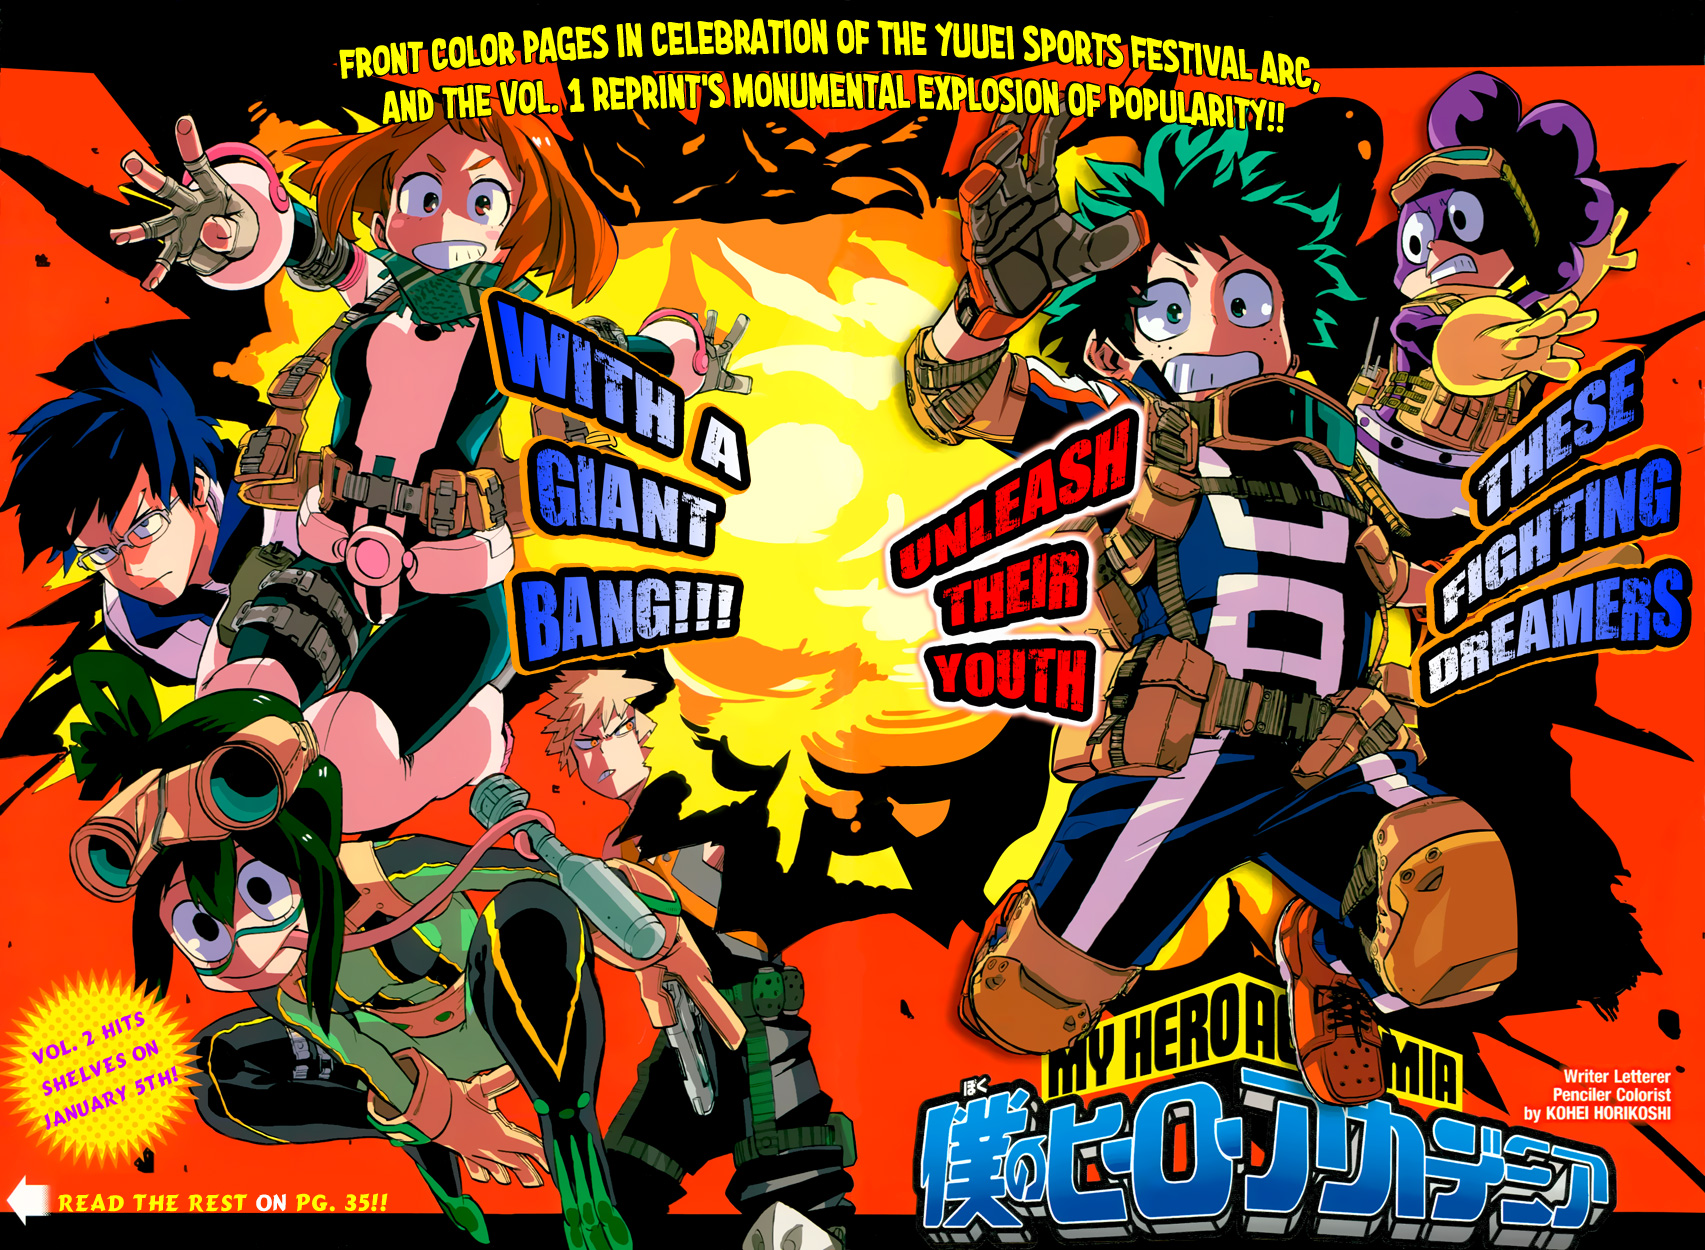 https://snapthirty.files.wordpress.com/2015/02/my-hero-academia-manga-double-page-01.jpg